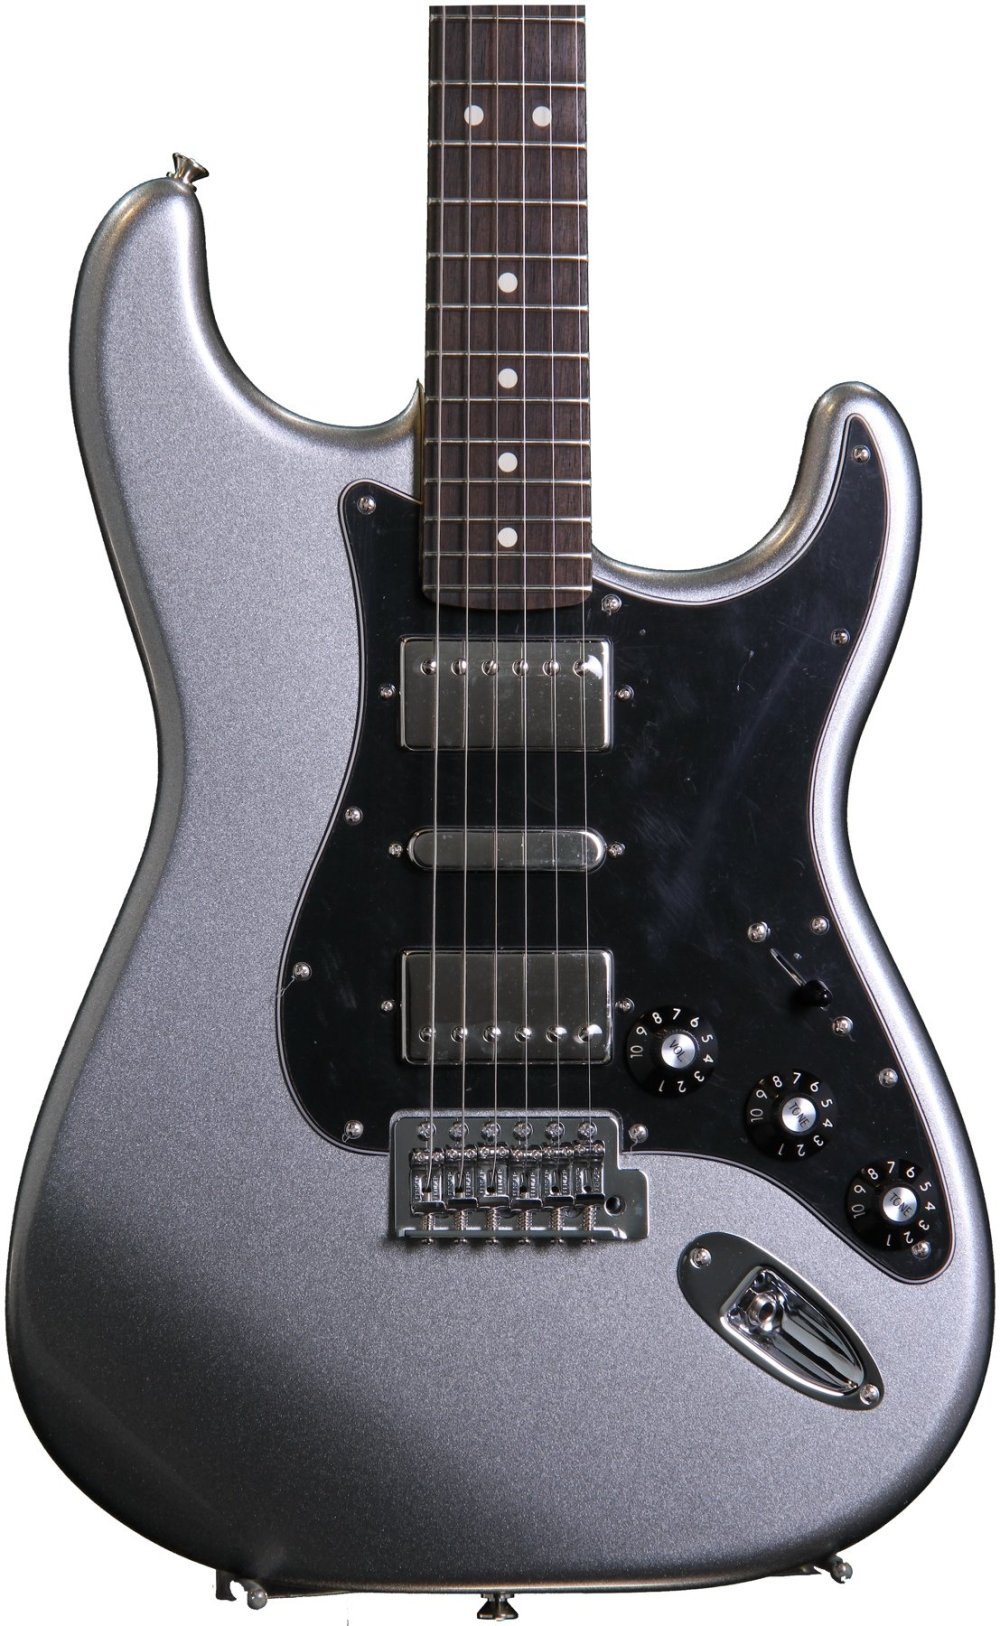 medium resolution of fender blacktop stratocaster hsh titanium silver image 1